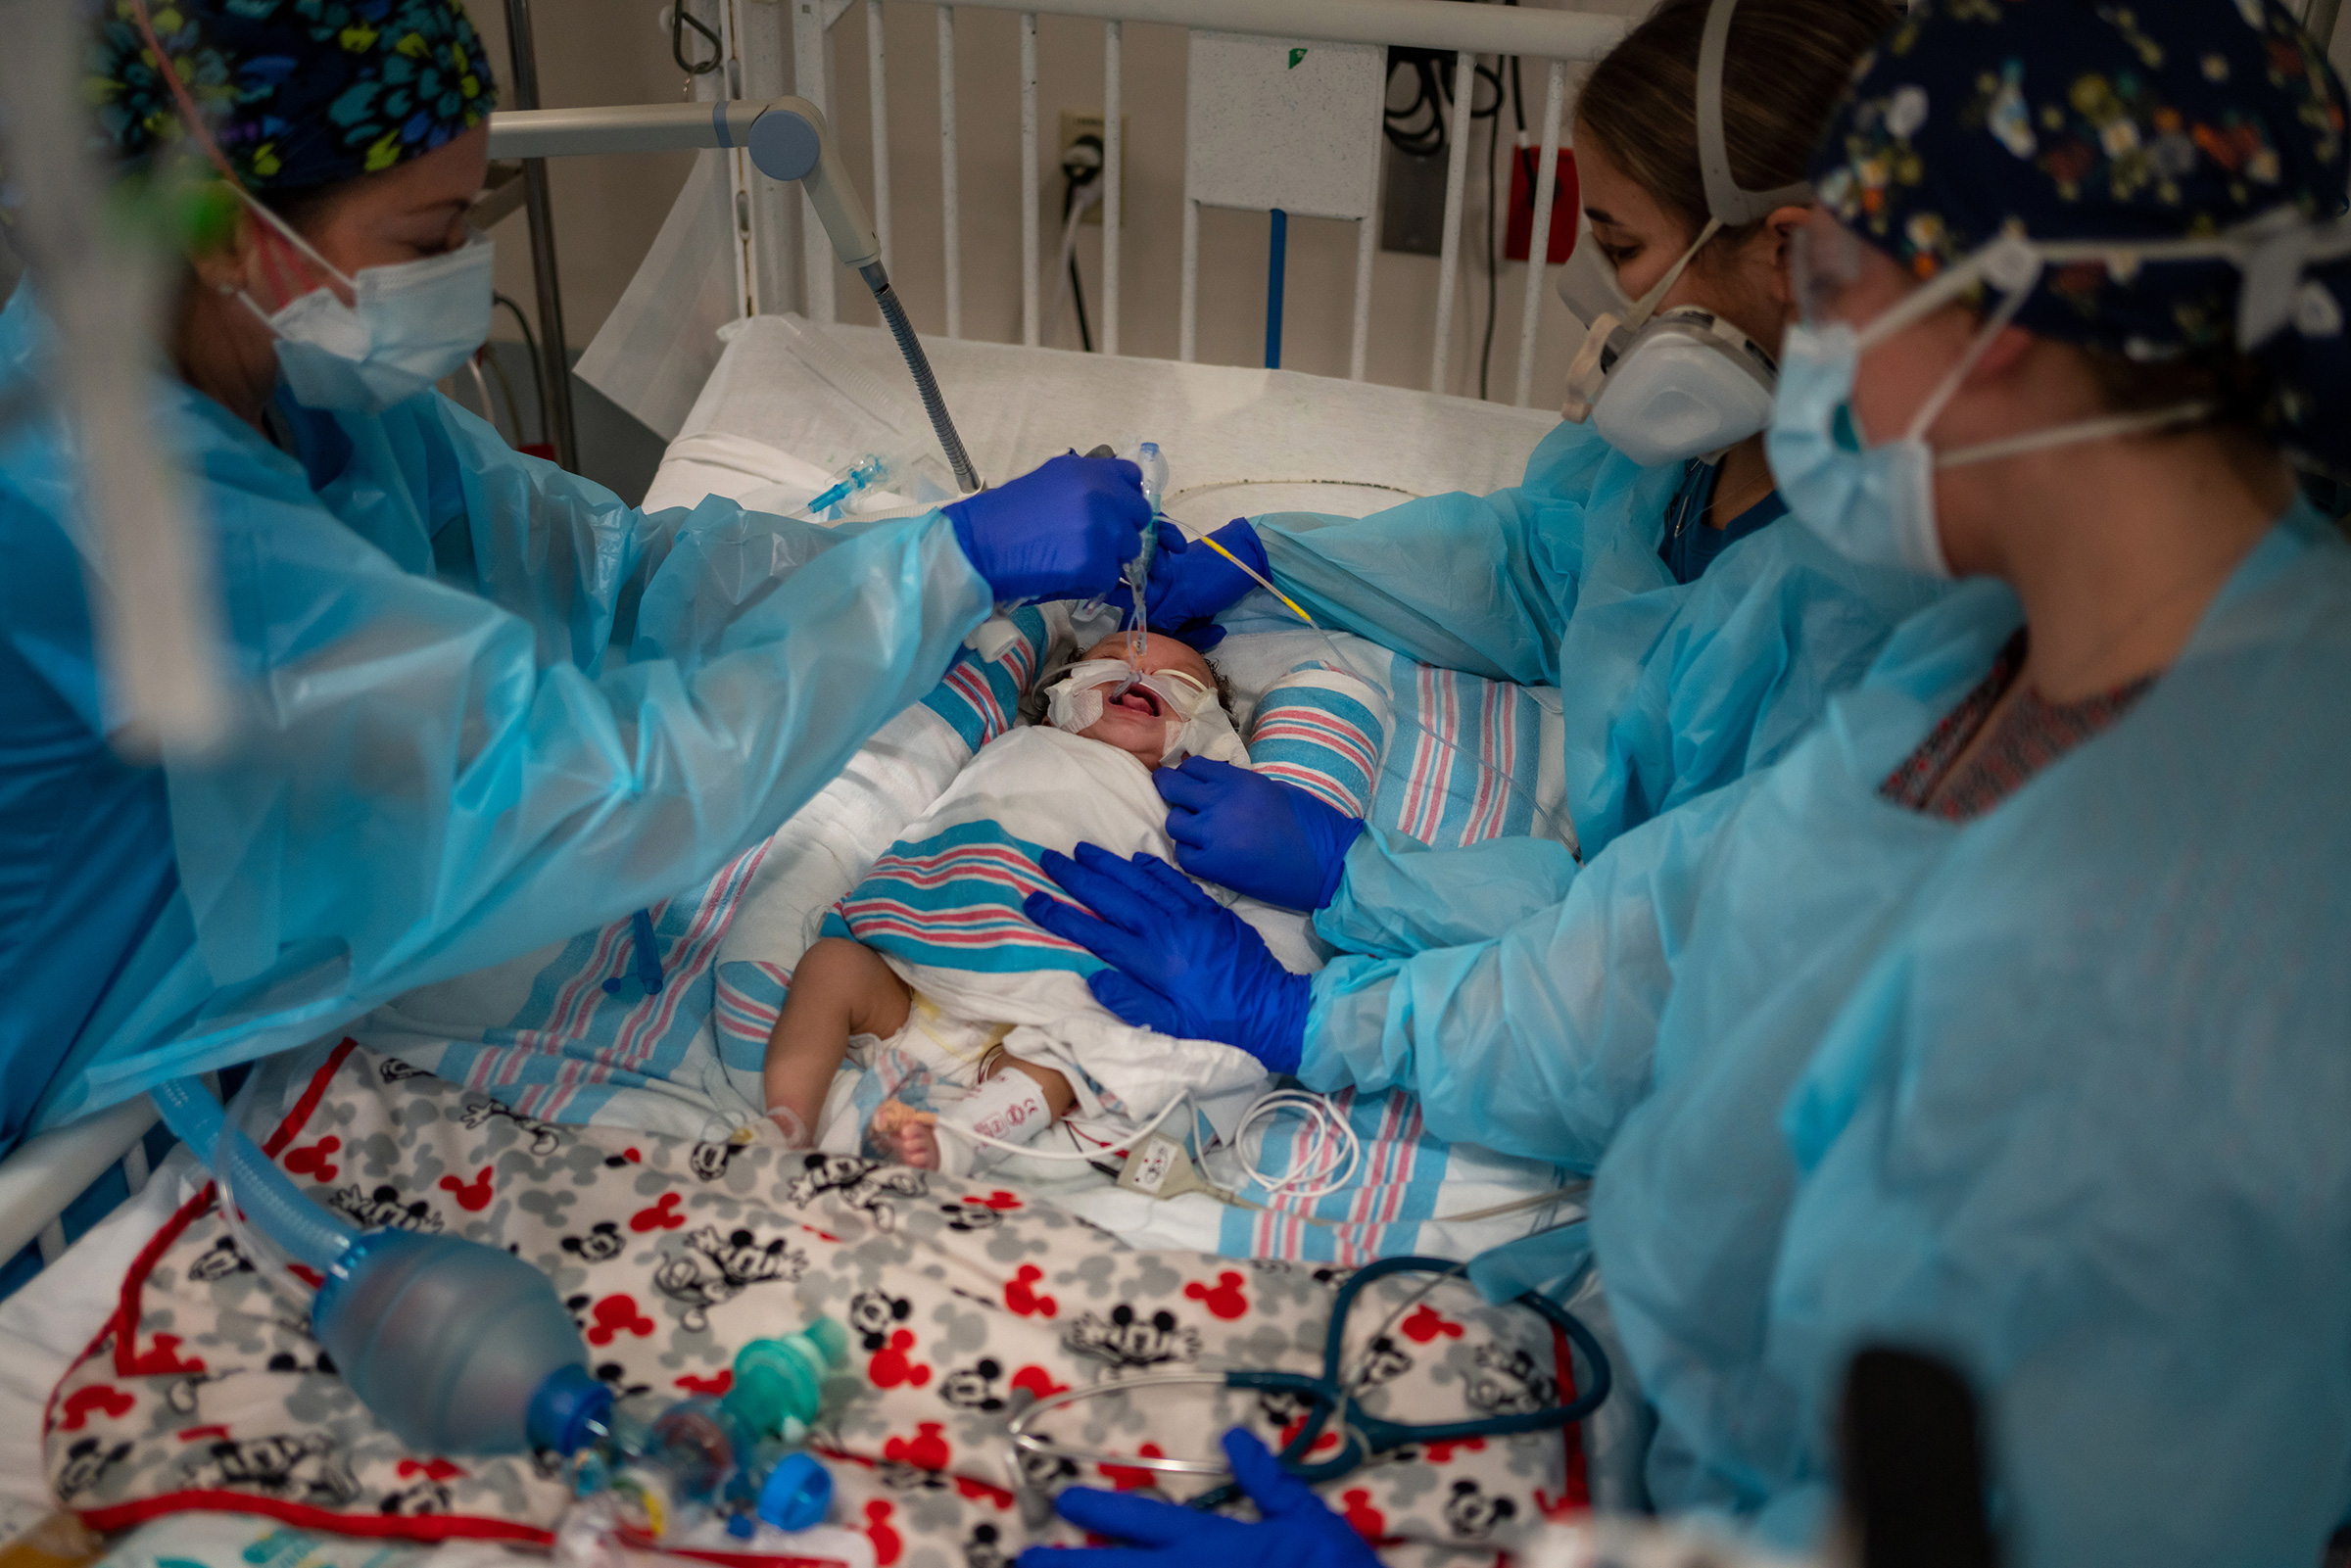 Two-month-old Carvase Perrilloux undergoes an extubation procedure, taking him off of the ventilator that has been keeping him alive.